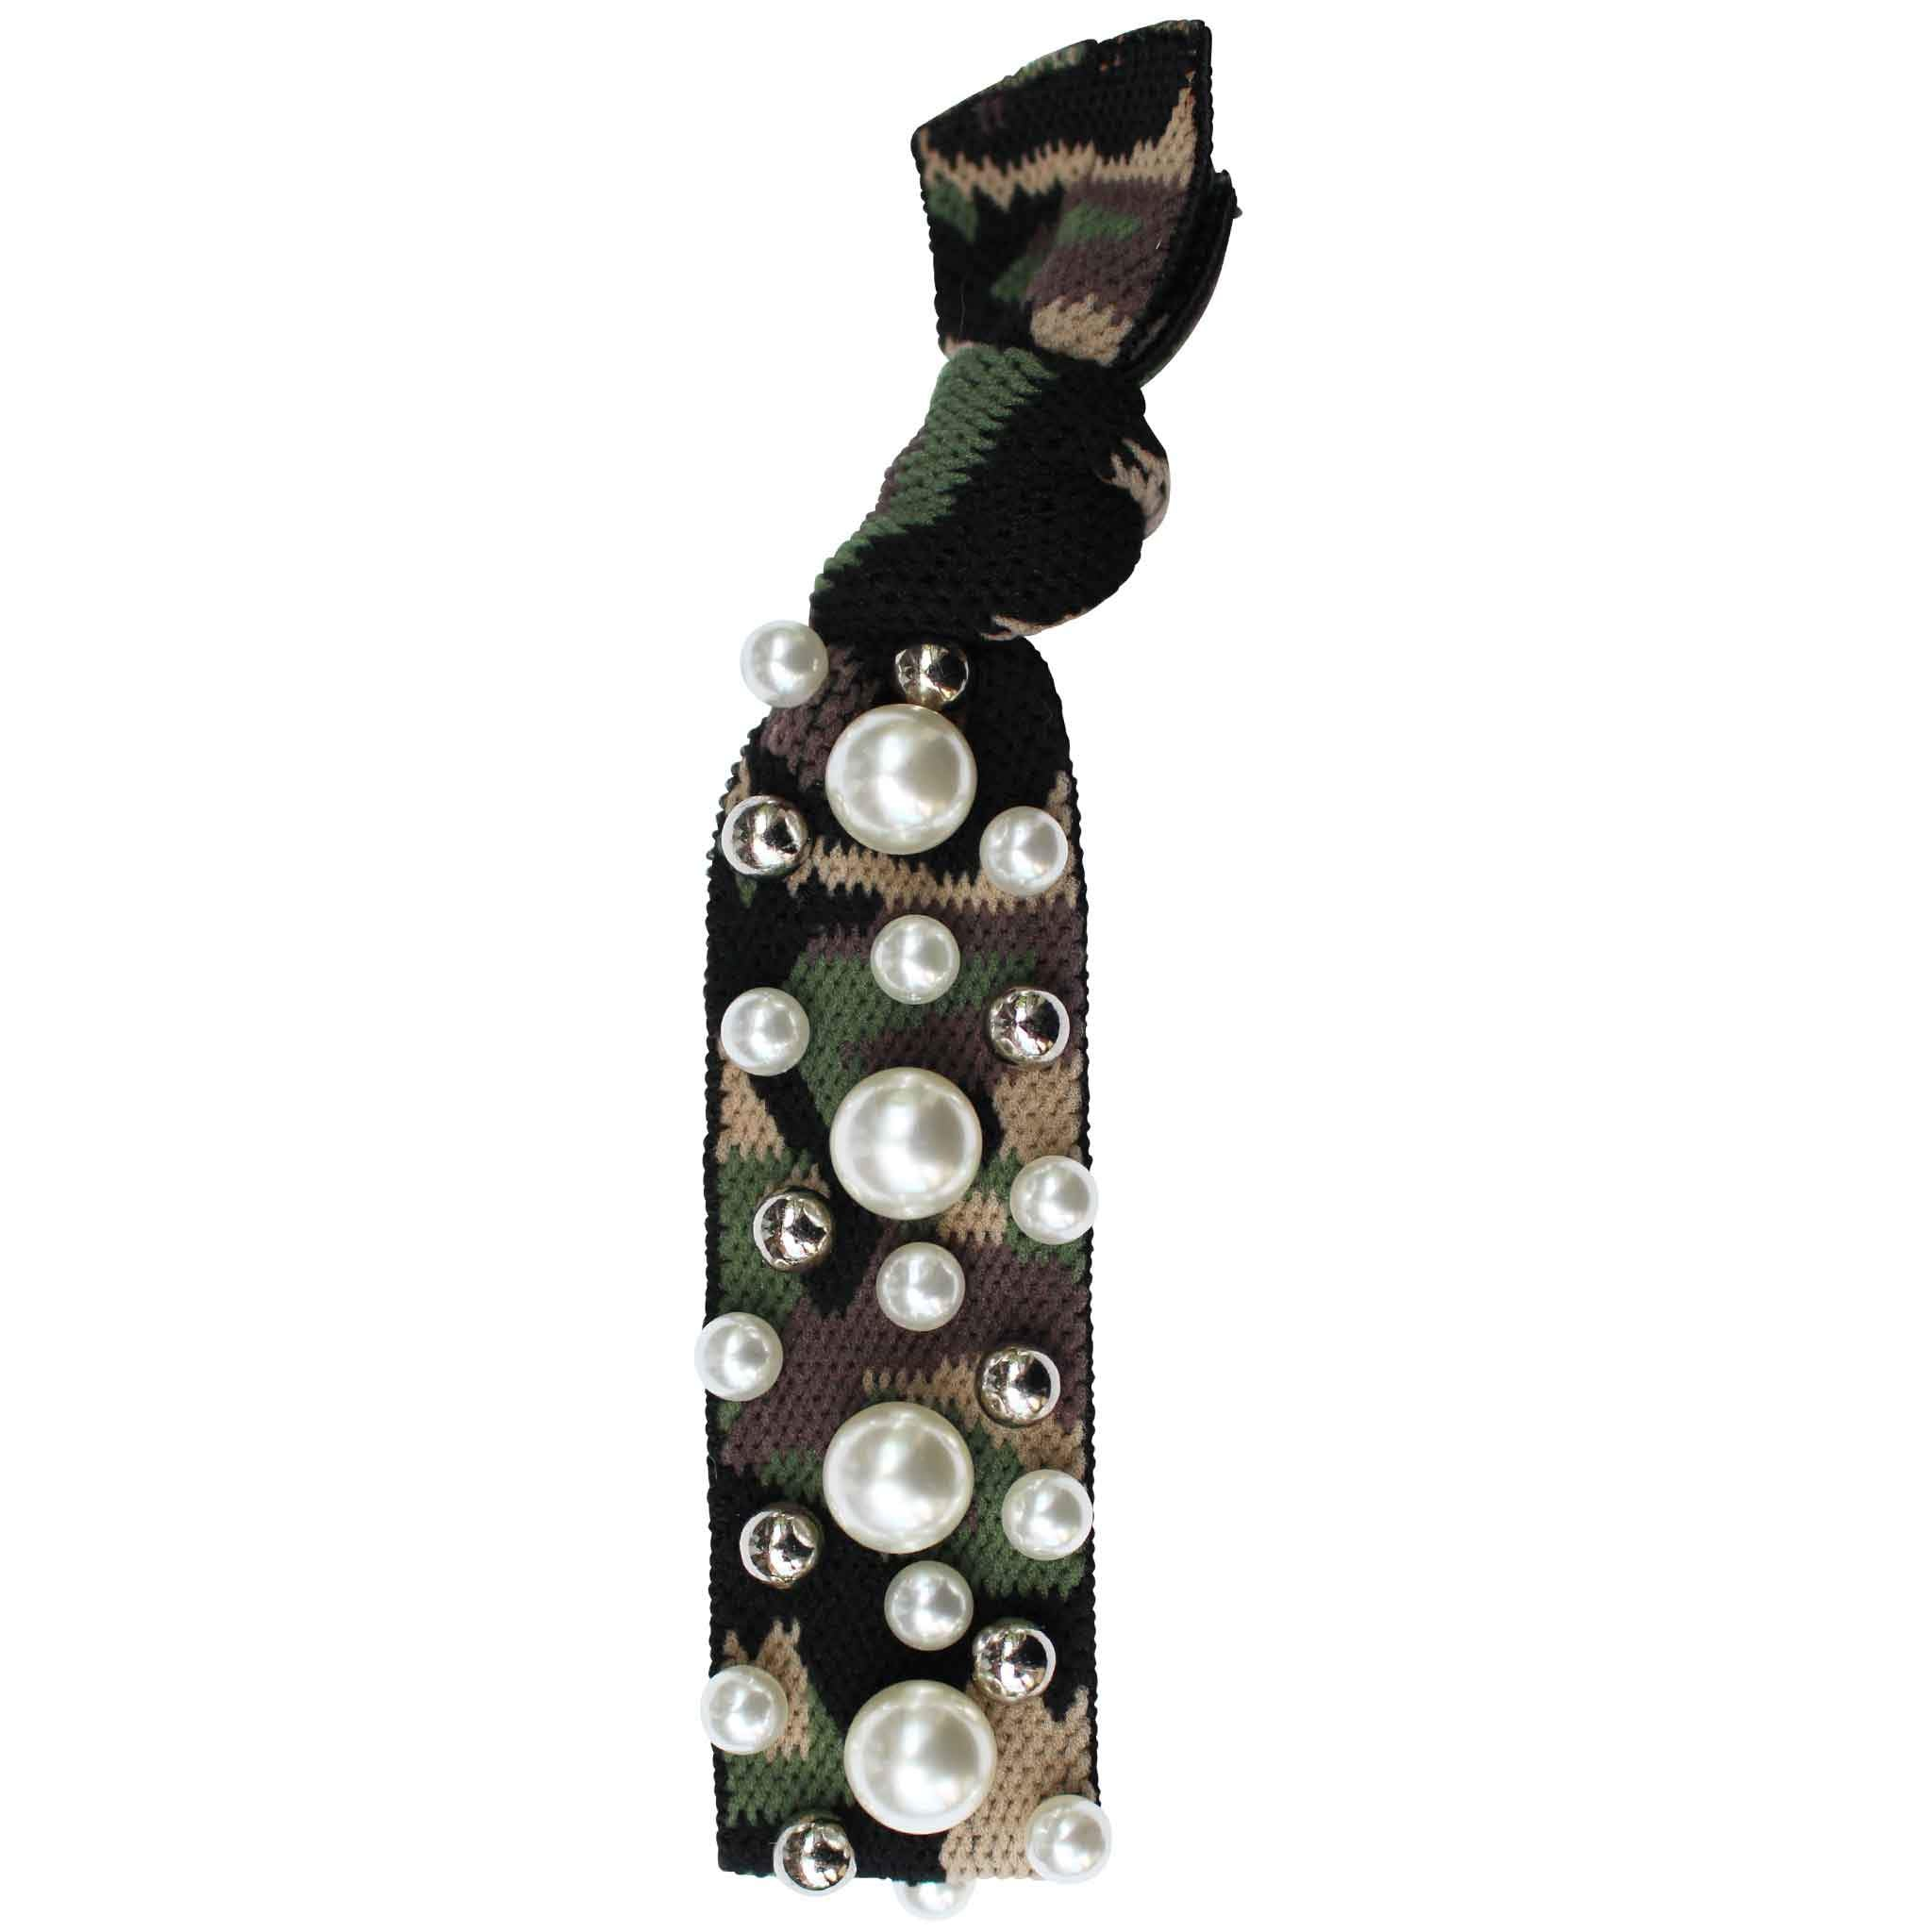 Gemelli Jewelry Hair Tie with Vegan Pearl and Silver Ball Studs in Green Camo Print